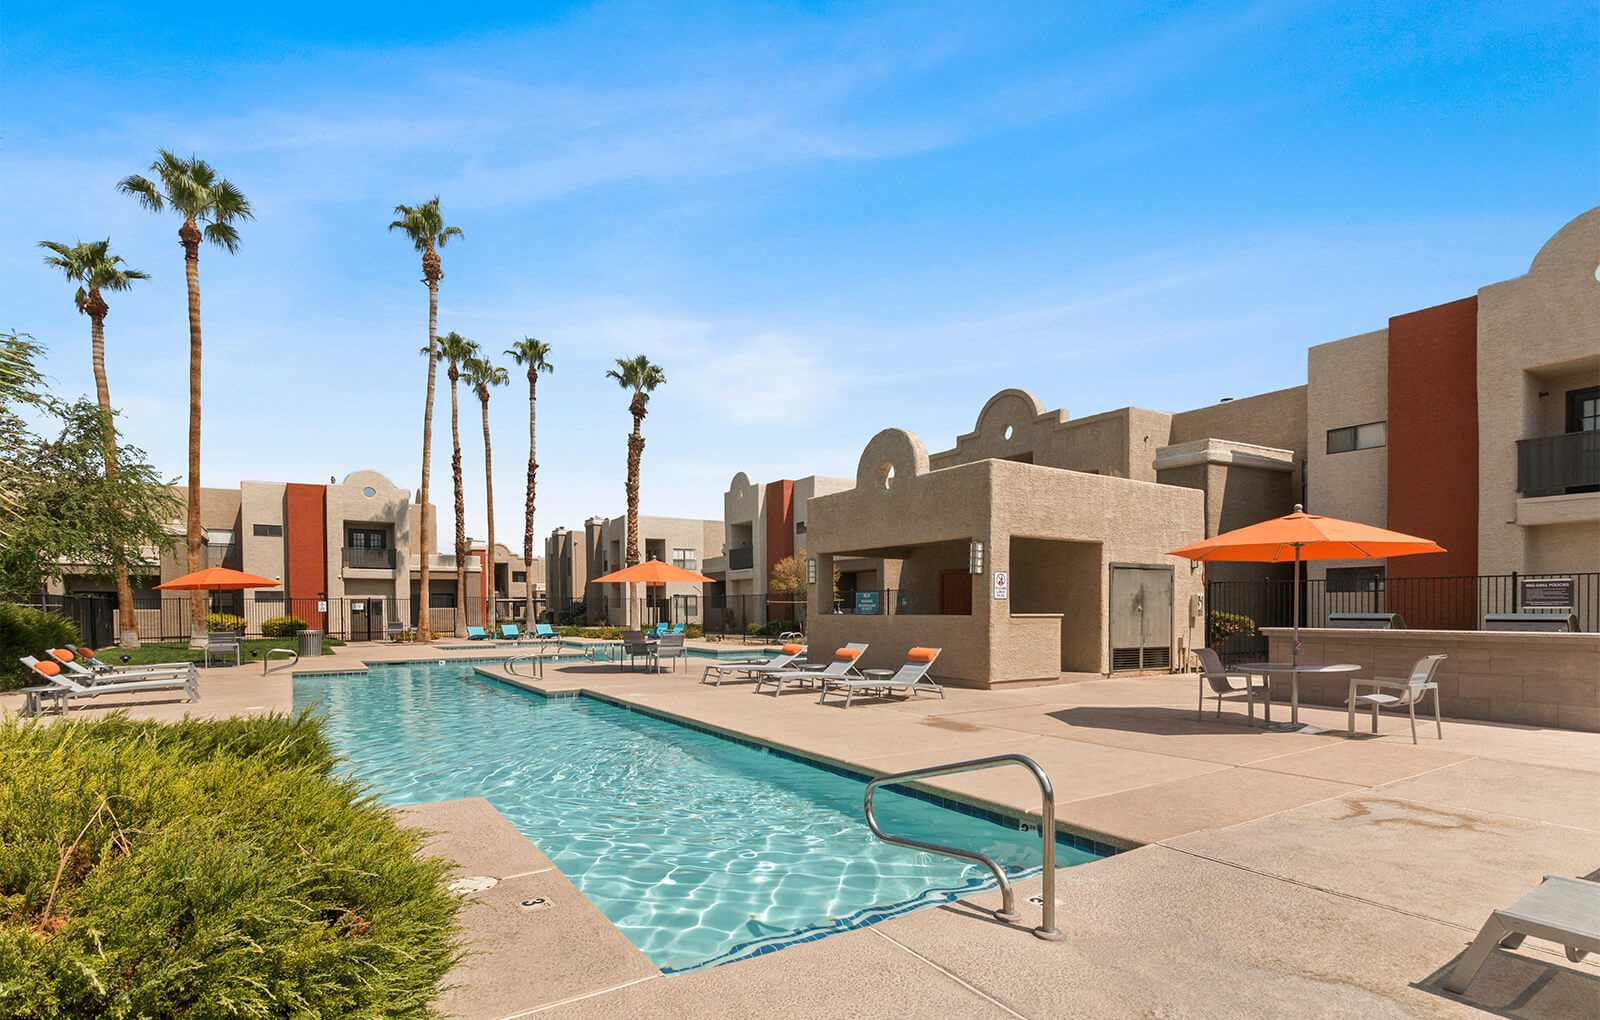 Outdoor pool with apartments in the background